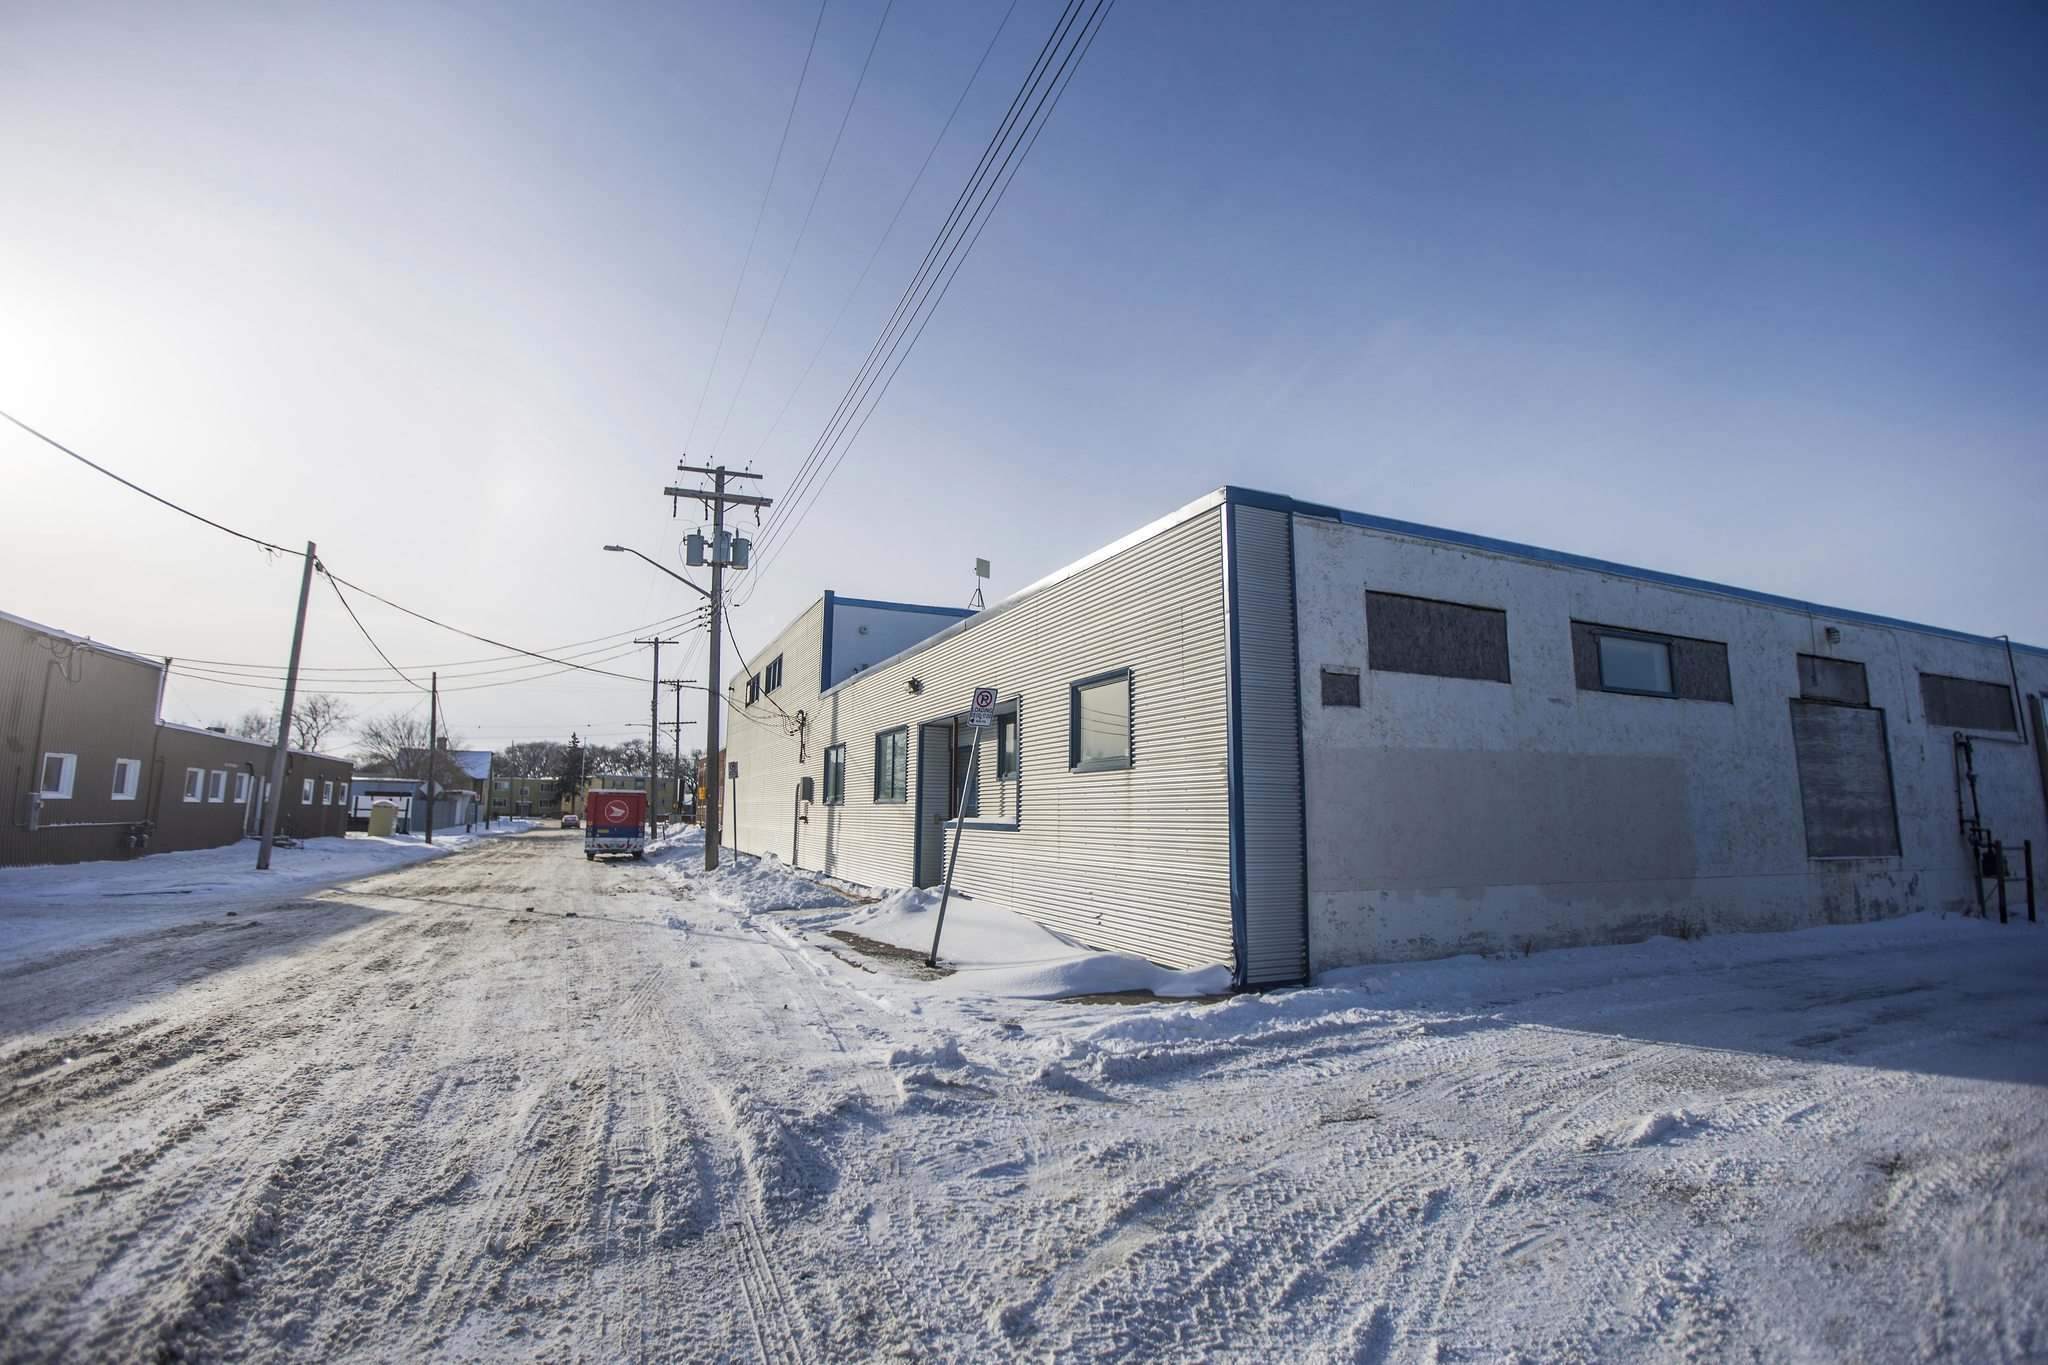 MIKAELA MACKENZIE / WINNIPEG FREE PRESS</p><p>The city's archives are housed in a nondescript building on Myrtle Street.</p>